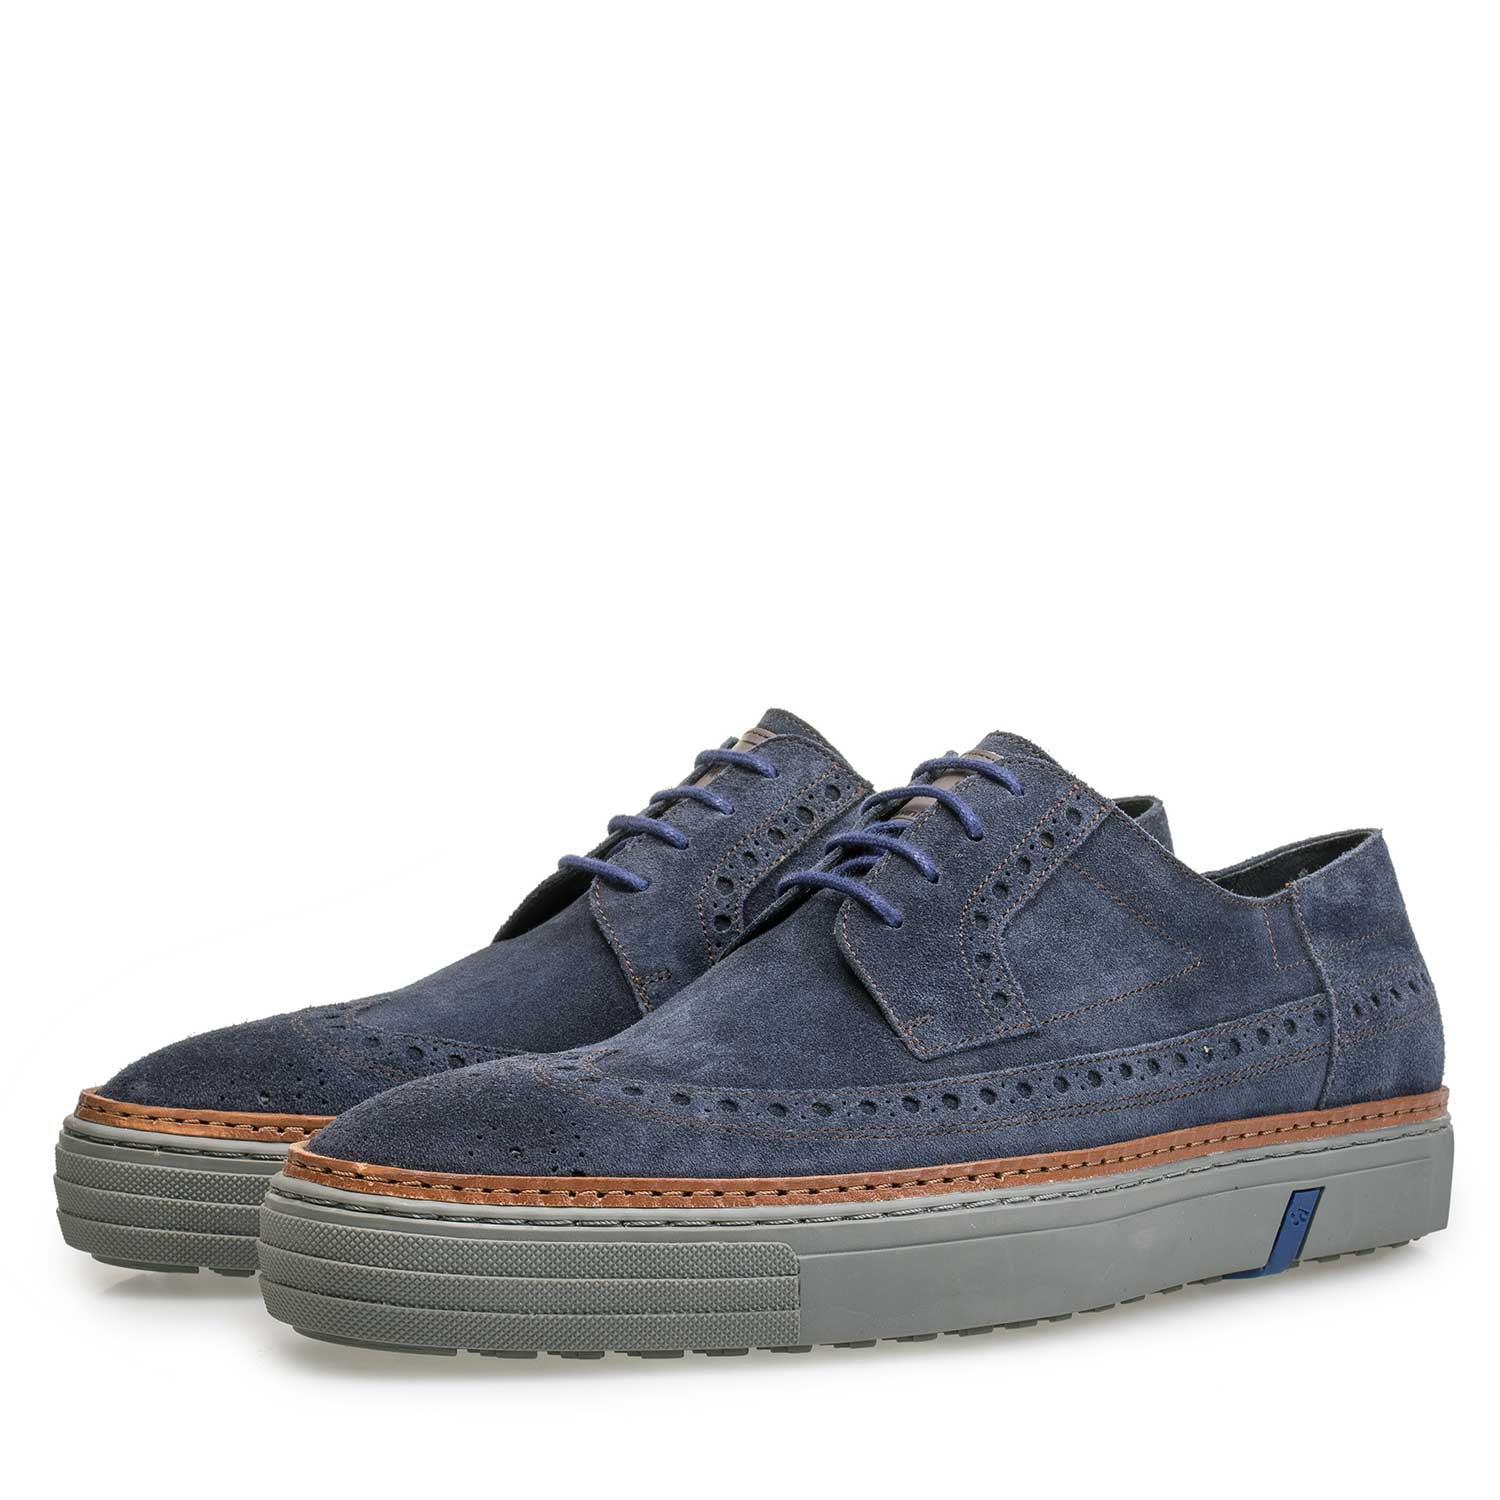 17092/01 - Blue suede sneaker with brogue details